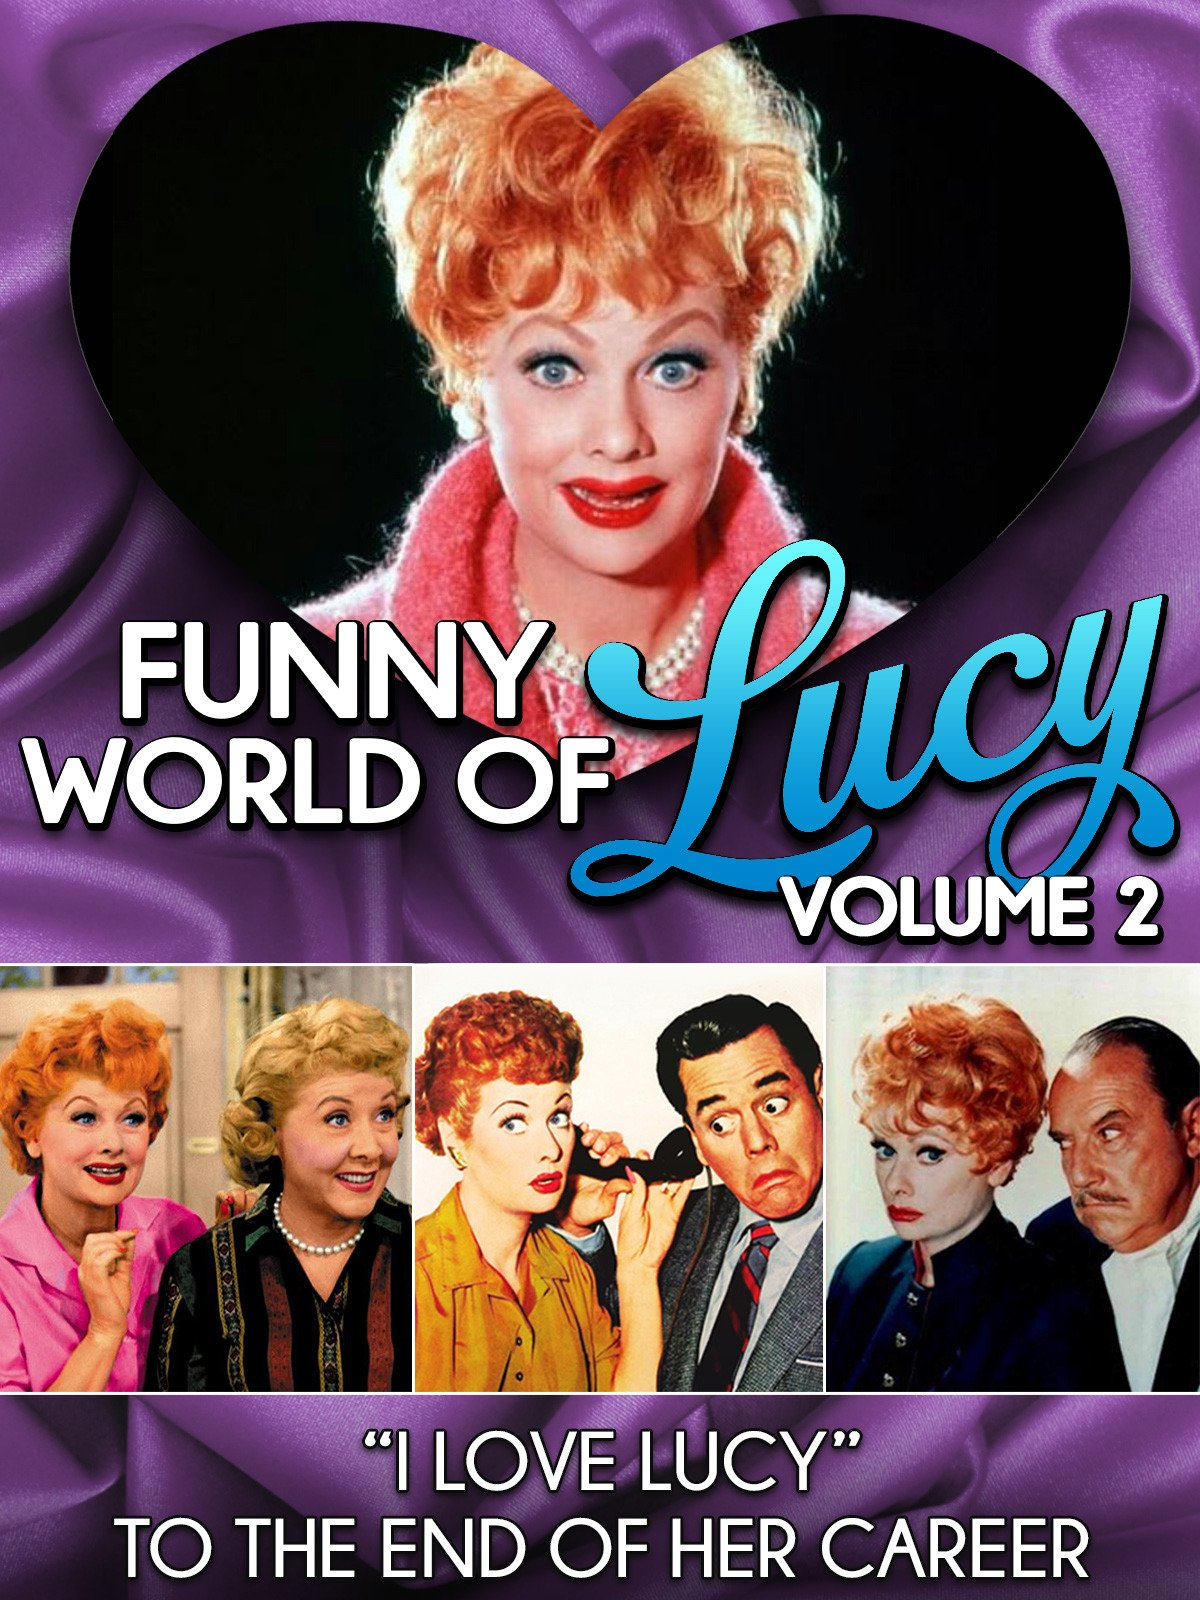 Funny World of Lucy, Volume 2...I Love Lucy To The End of Her Career